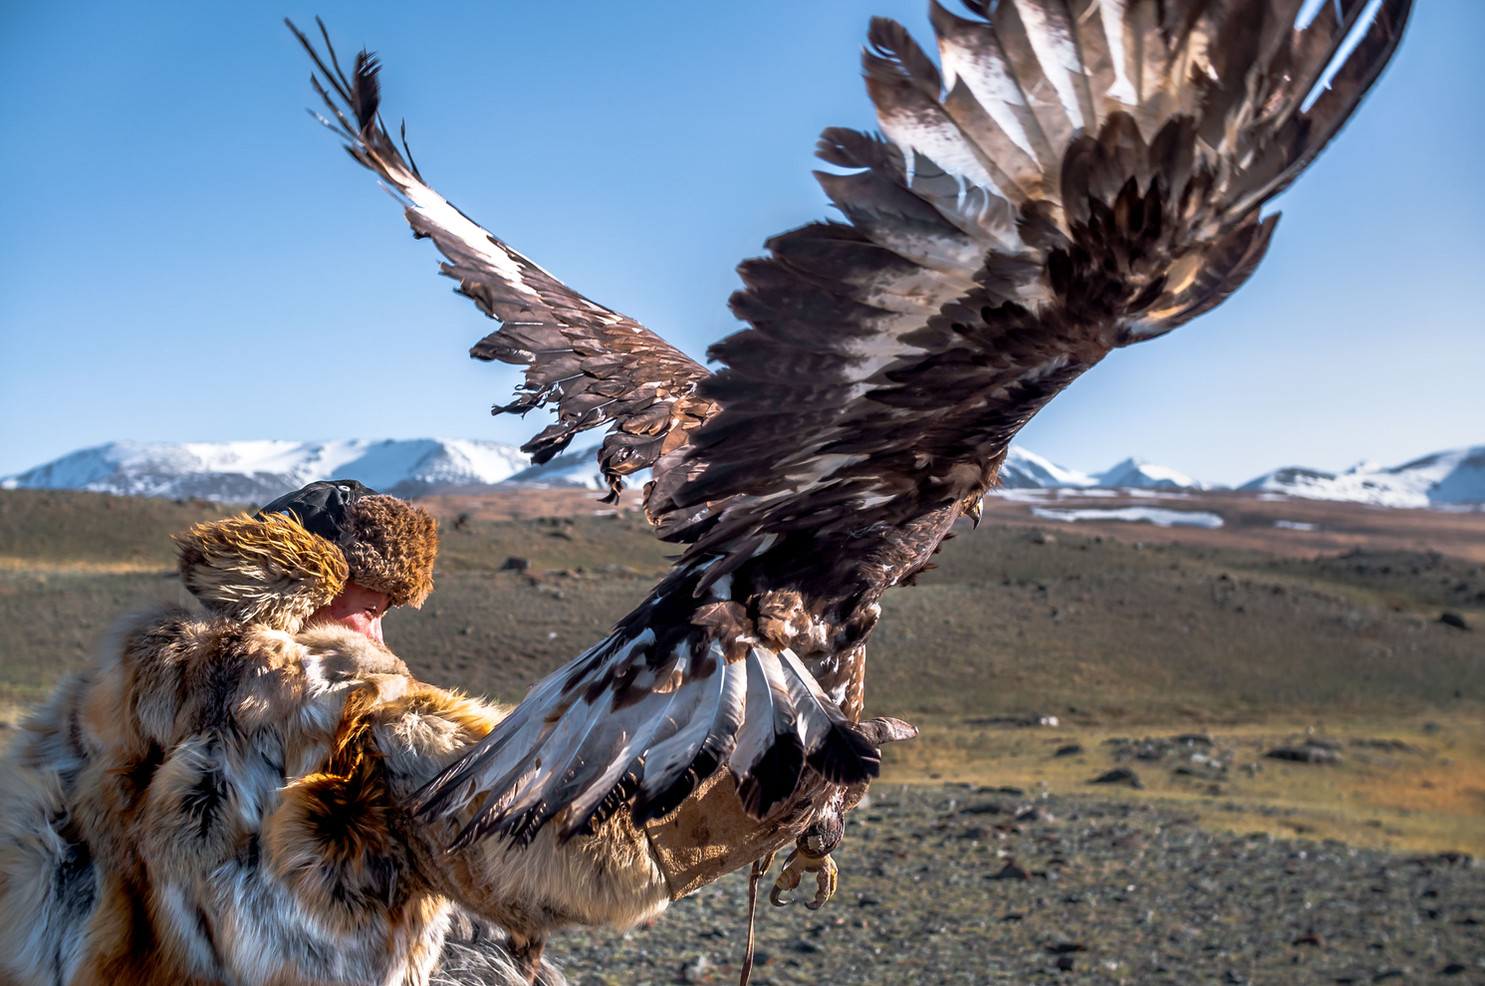 Esen releases his golden eagle as it takes flight in pursuit of a fake fur pellet.